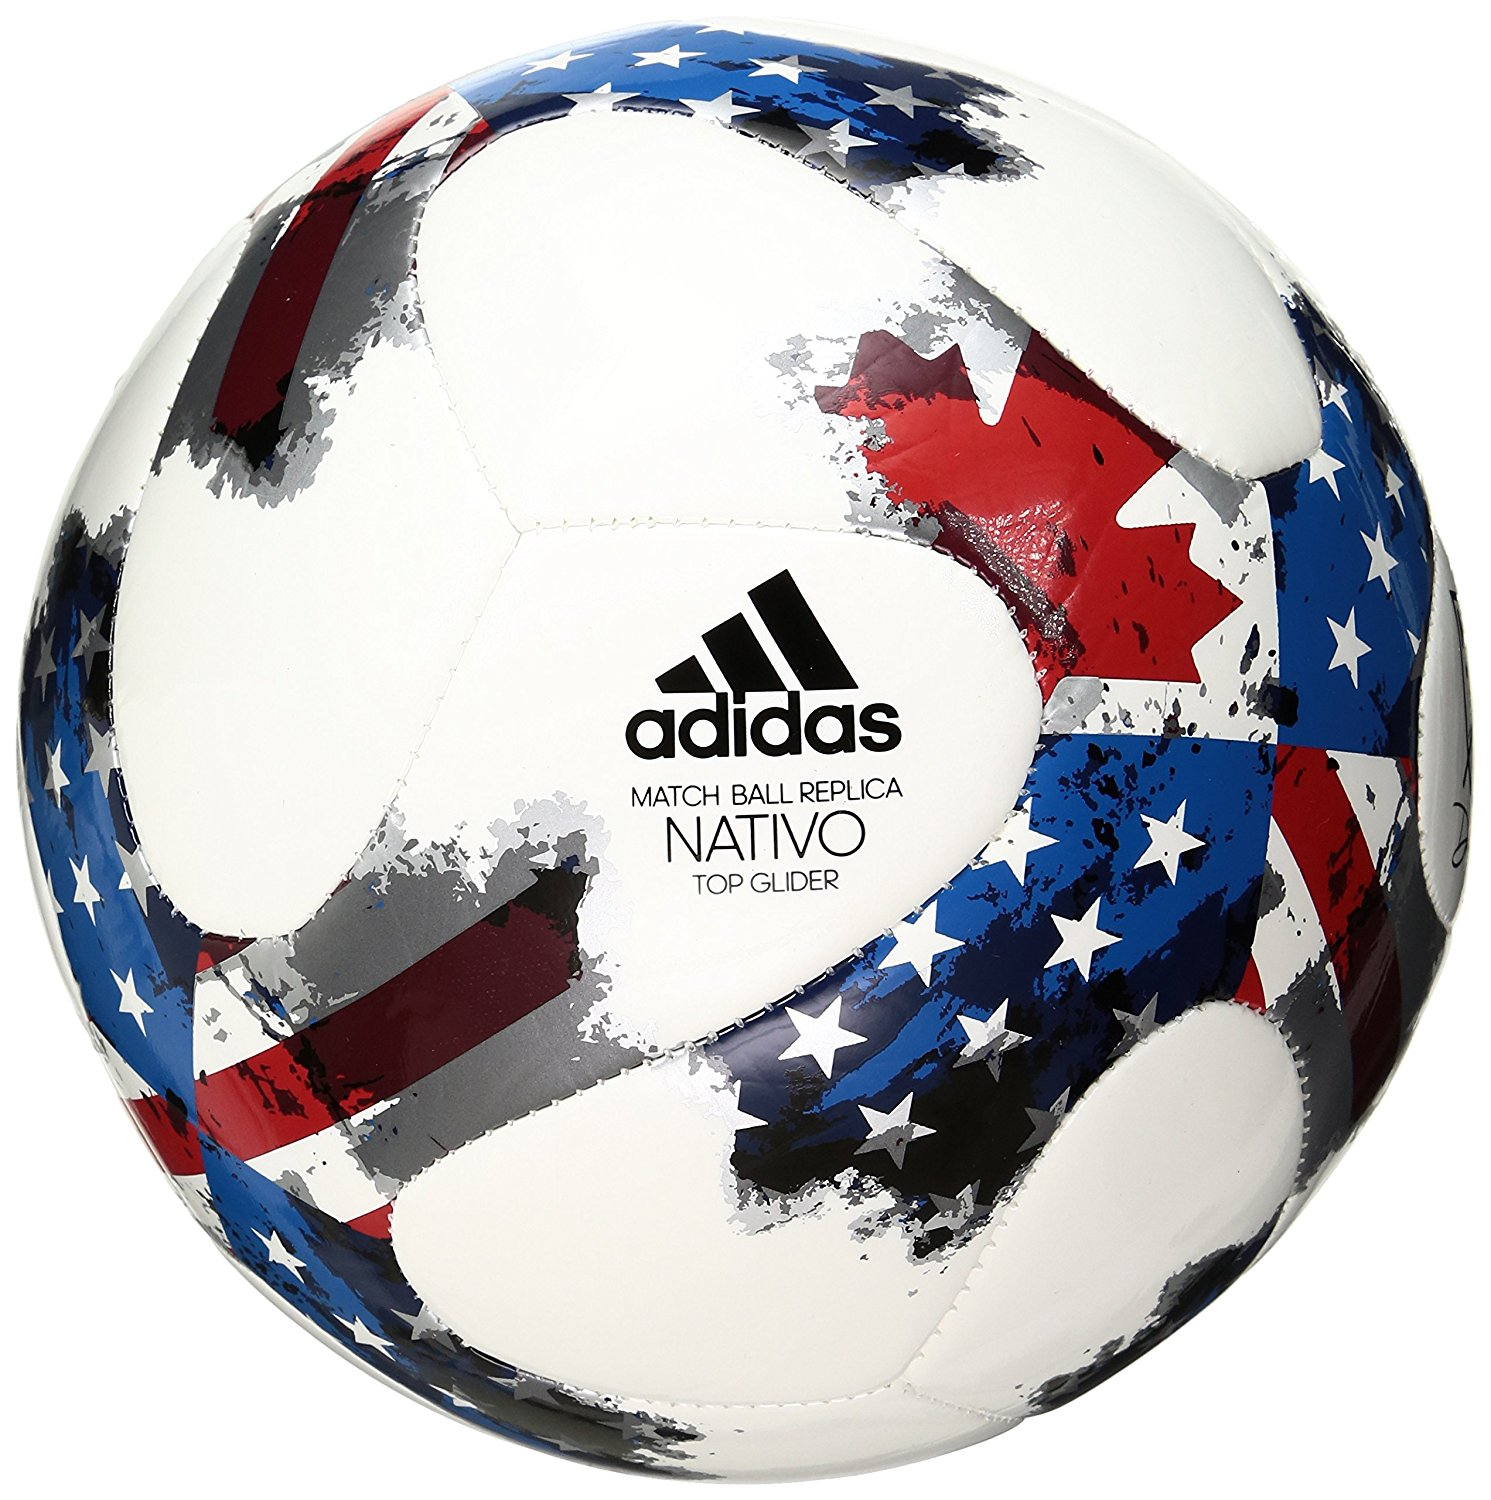 1491x1500 Adidas Mls Top Glider Soccer Ball Sports Amp Outdoors